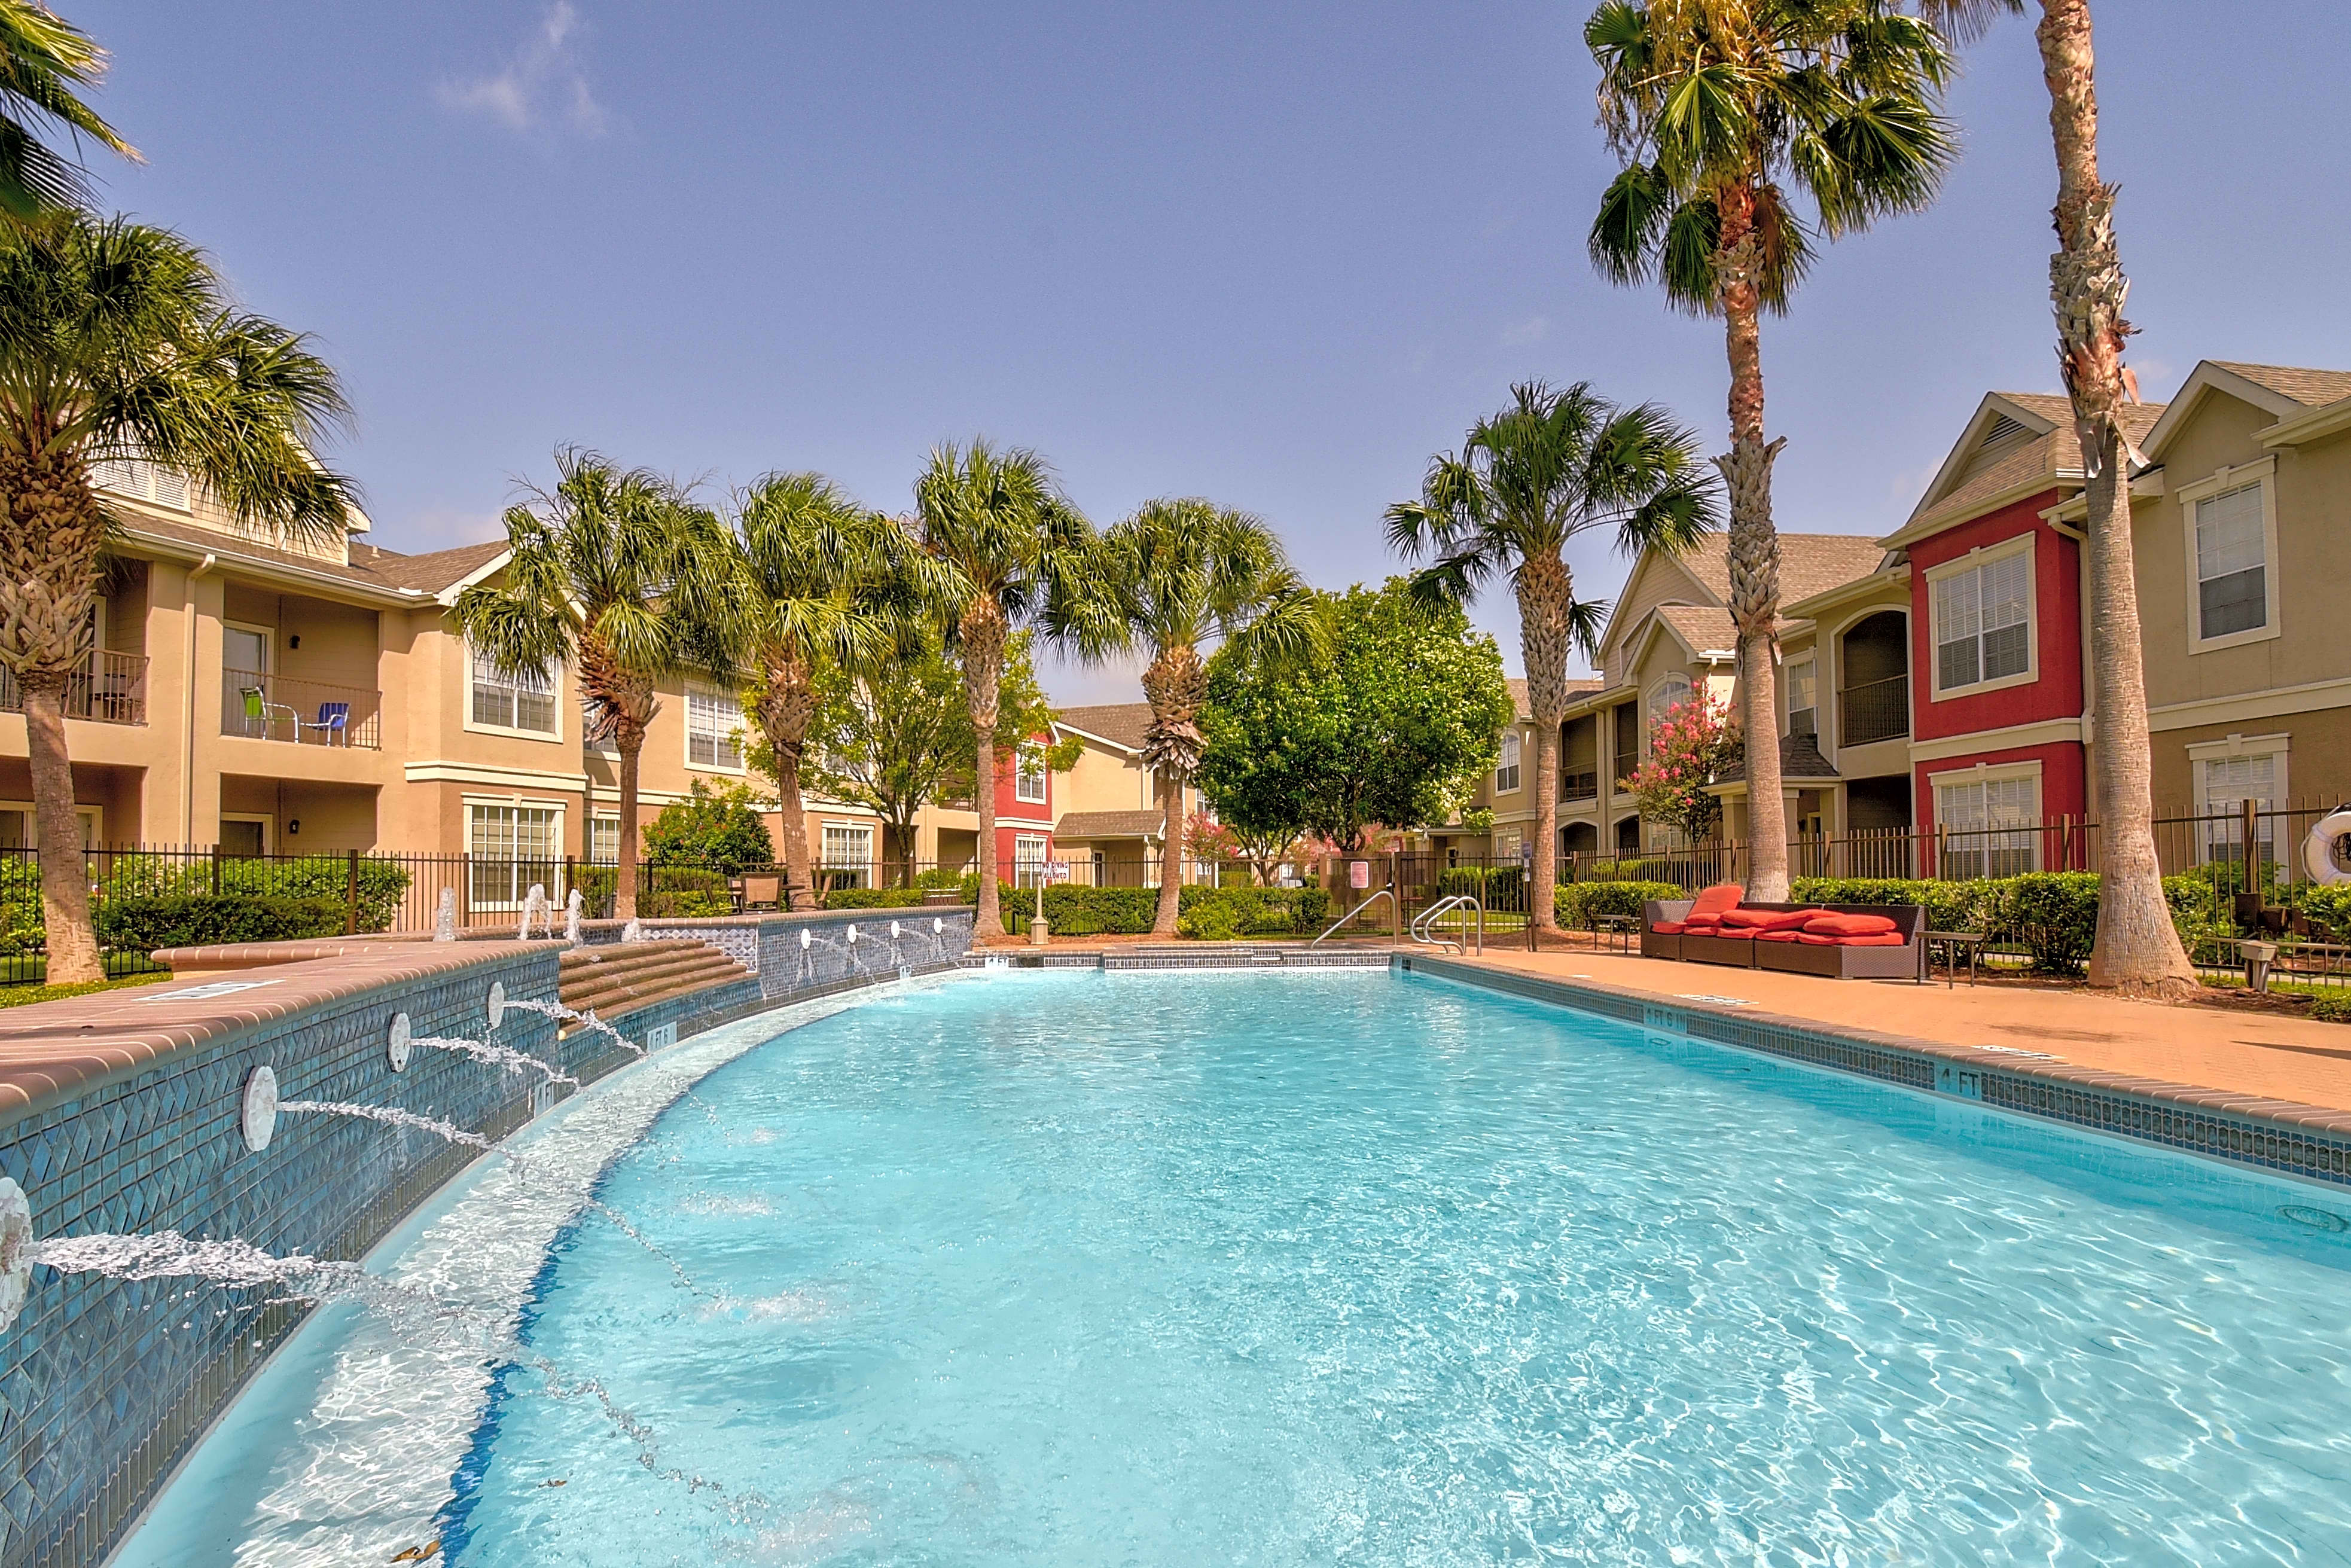 Apartments Near RGV Careers The Rincon for RGV Careers Students in Pharr, TX